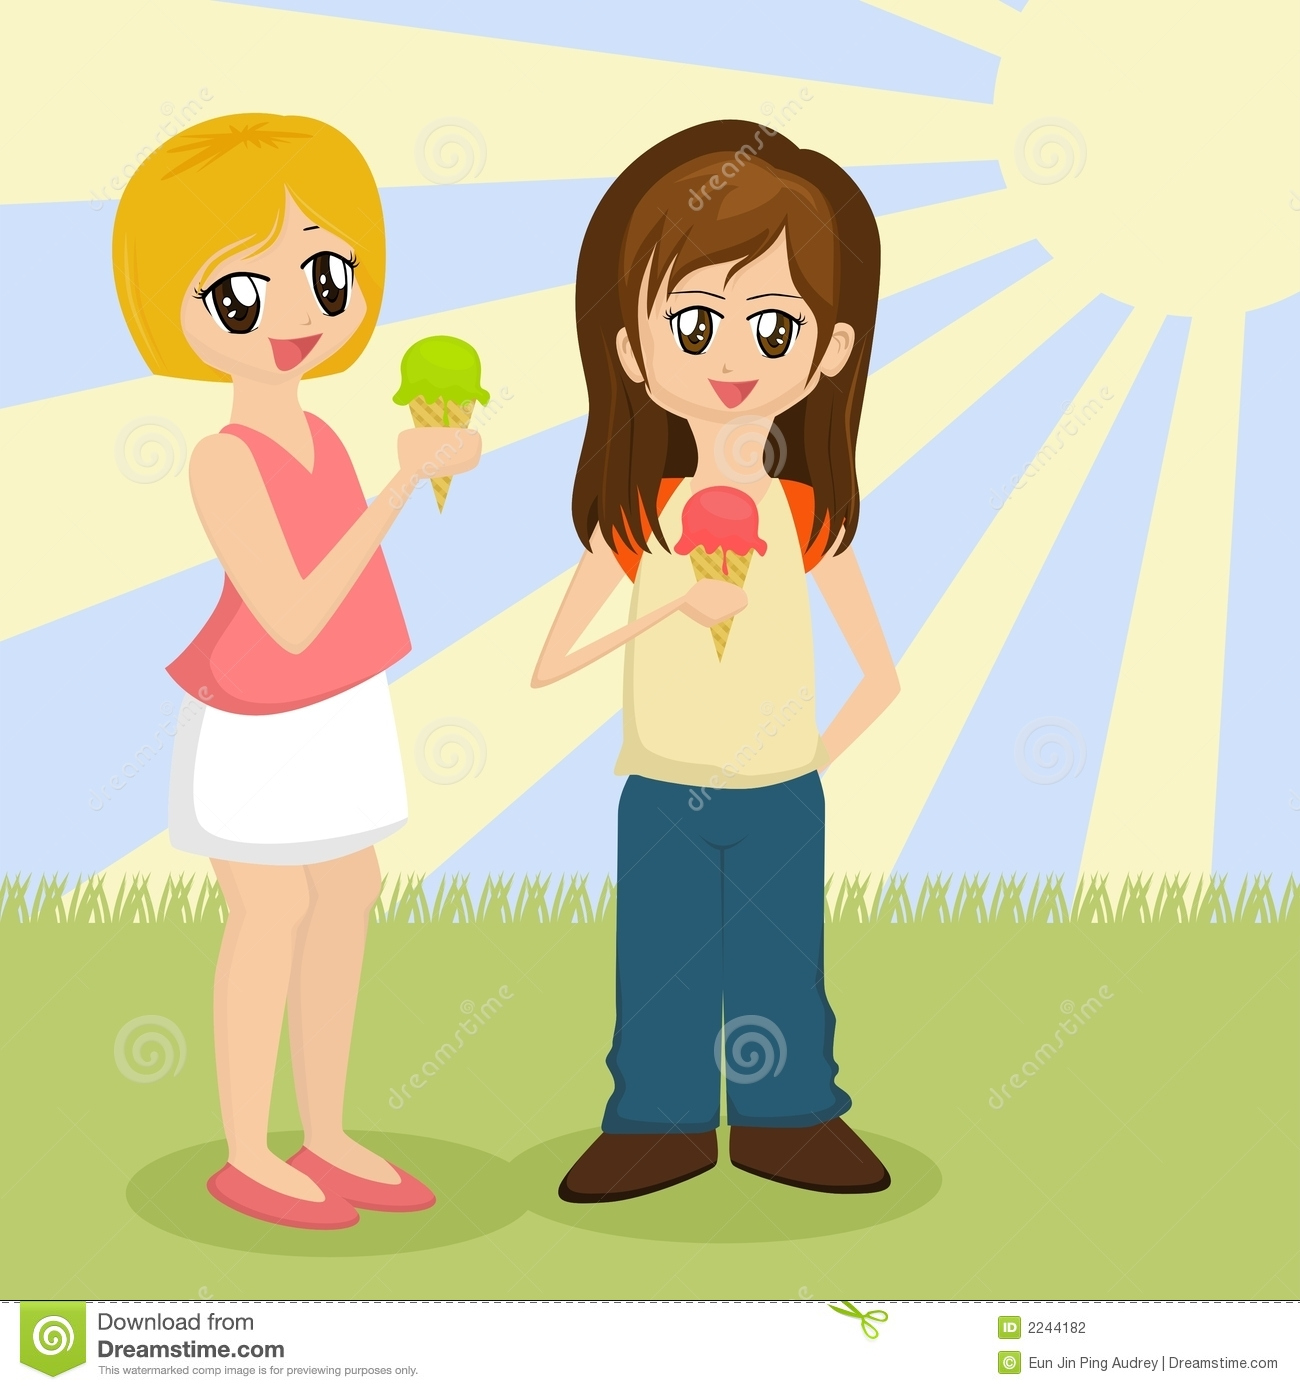 Two Girls Eating Ice Cream On A Hot And Sunny Day